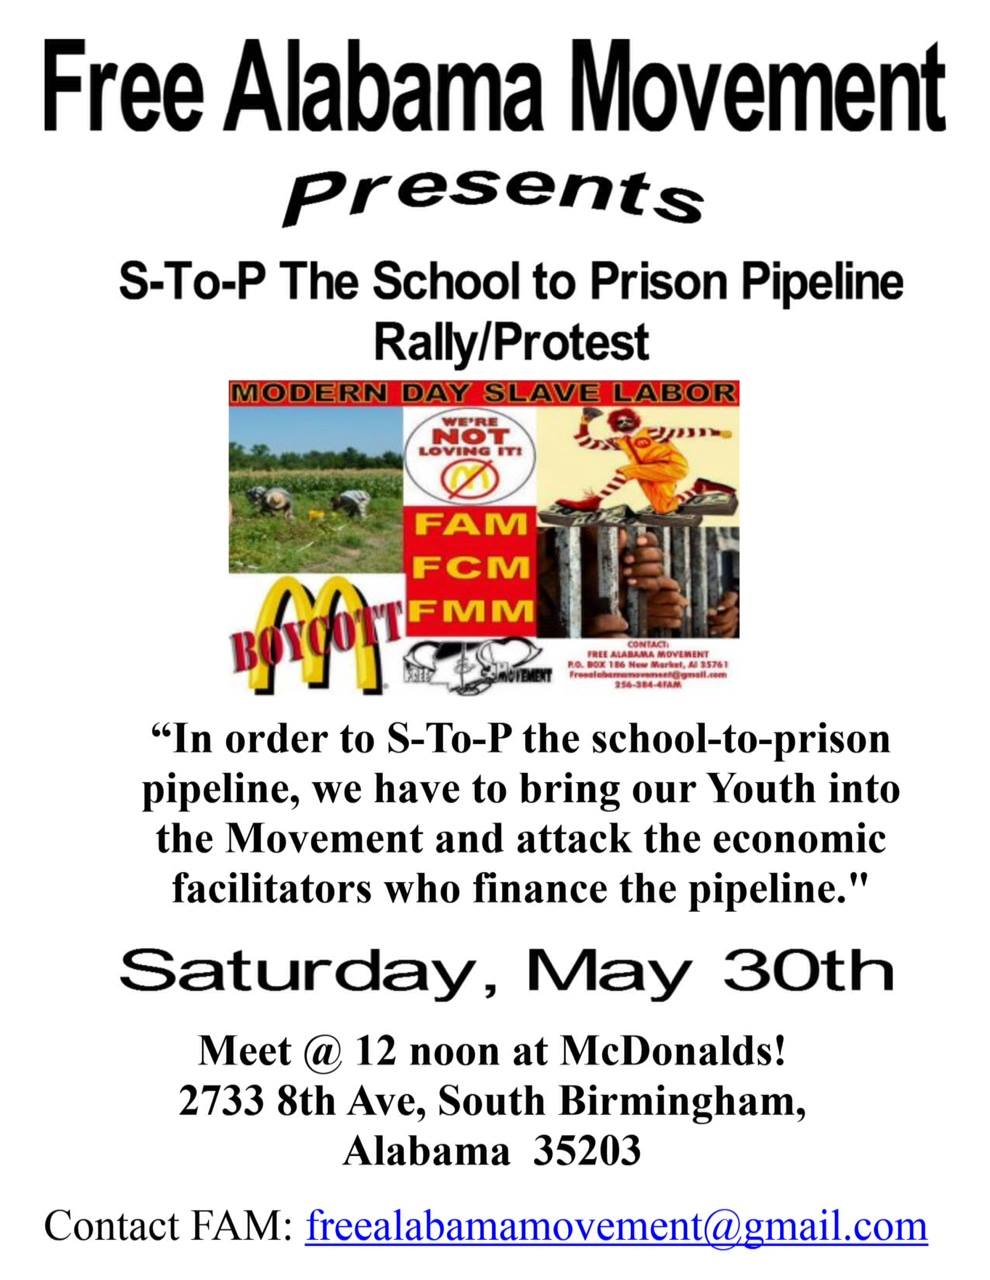 Poster for Free Alabama Movement Presents: S-To-P The School to Prison Pipeline Rally/ Protest - May 30th 2015 @McDonald's